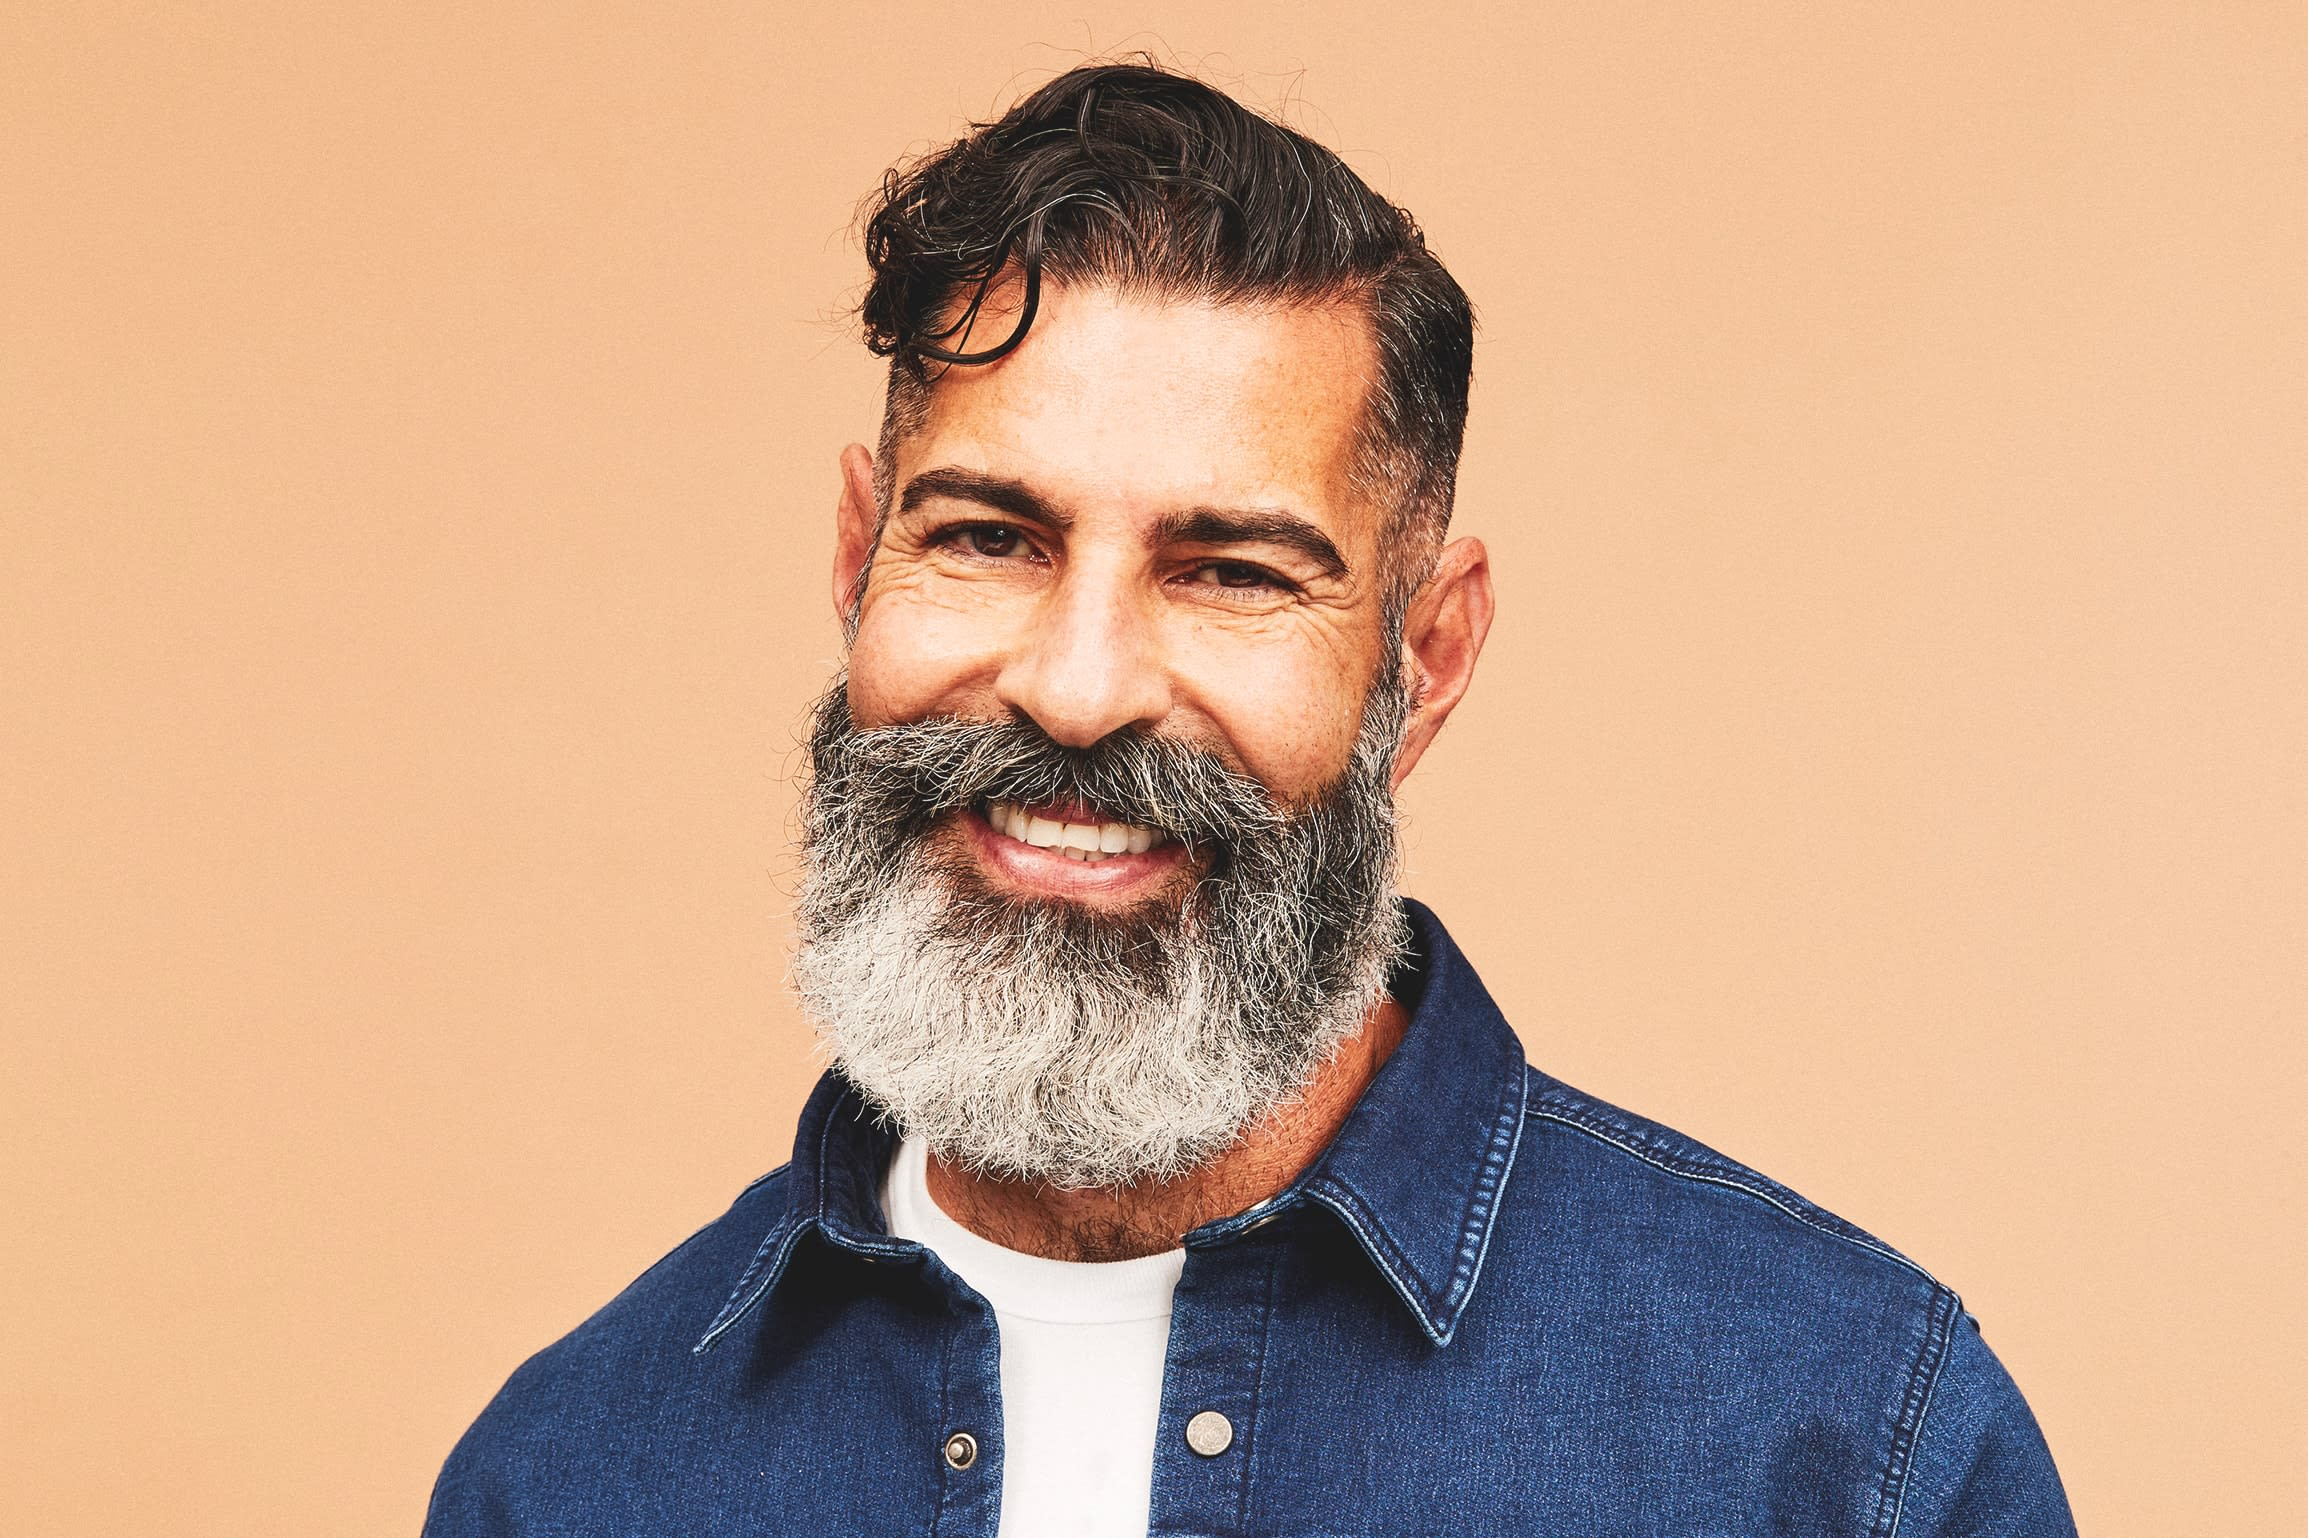 A smiling man with a full beard